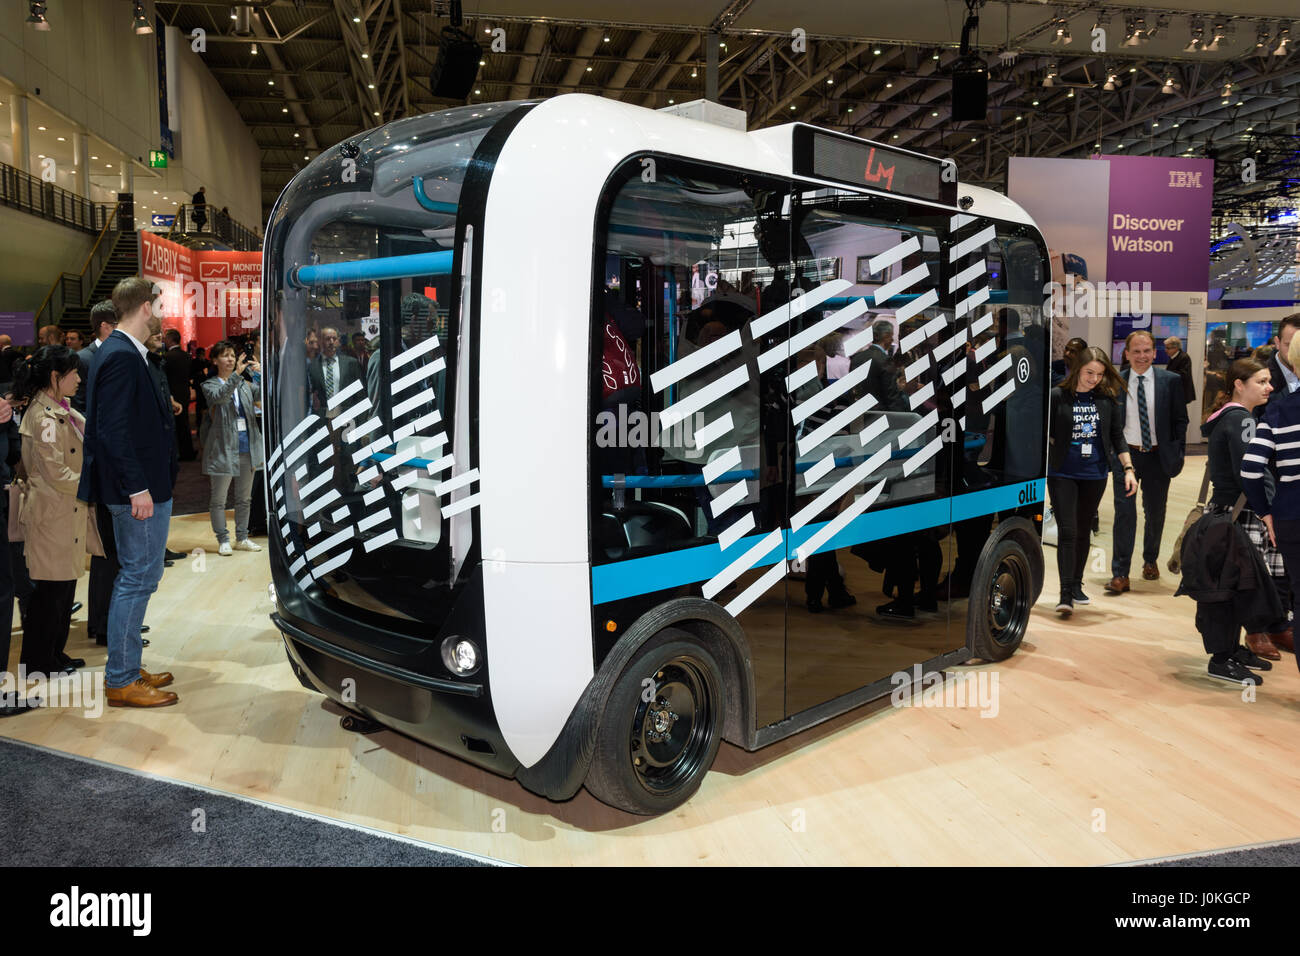 Self Driving Vehicle Stock Photos & Self Driving Vehicle Stock Images - Alamy